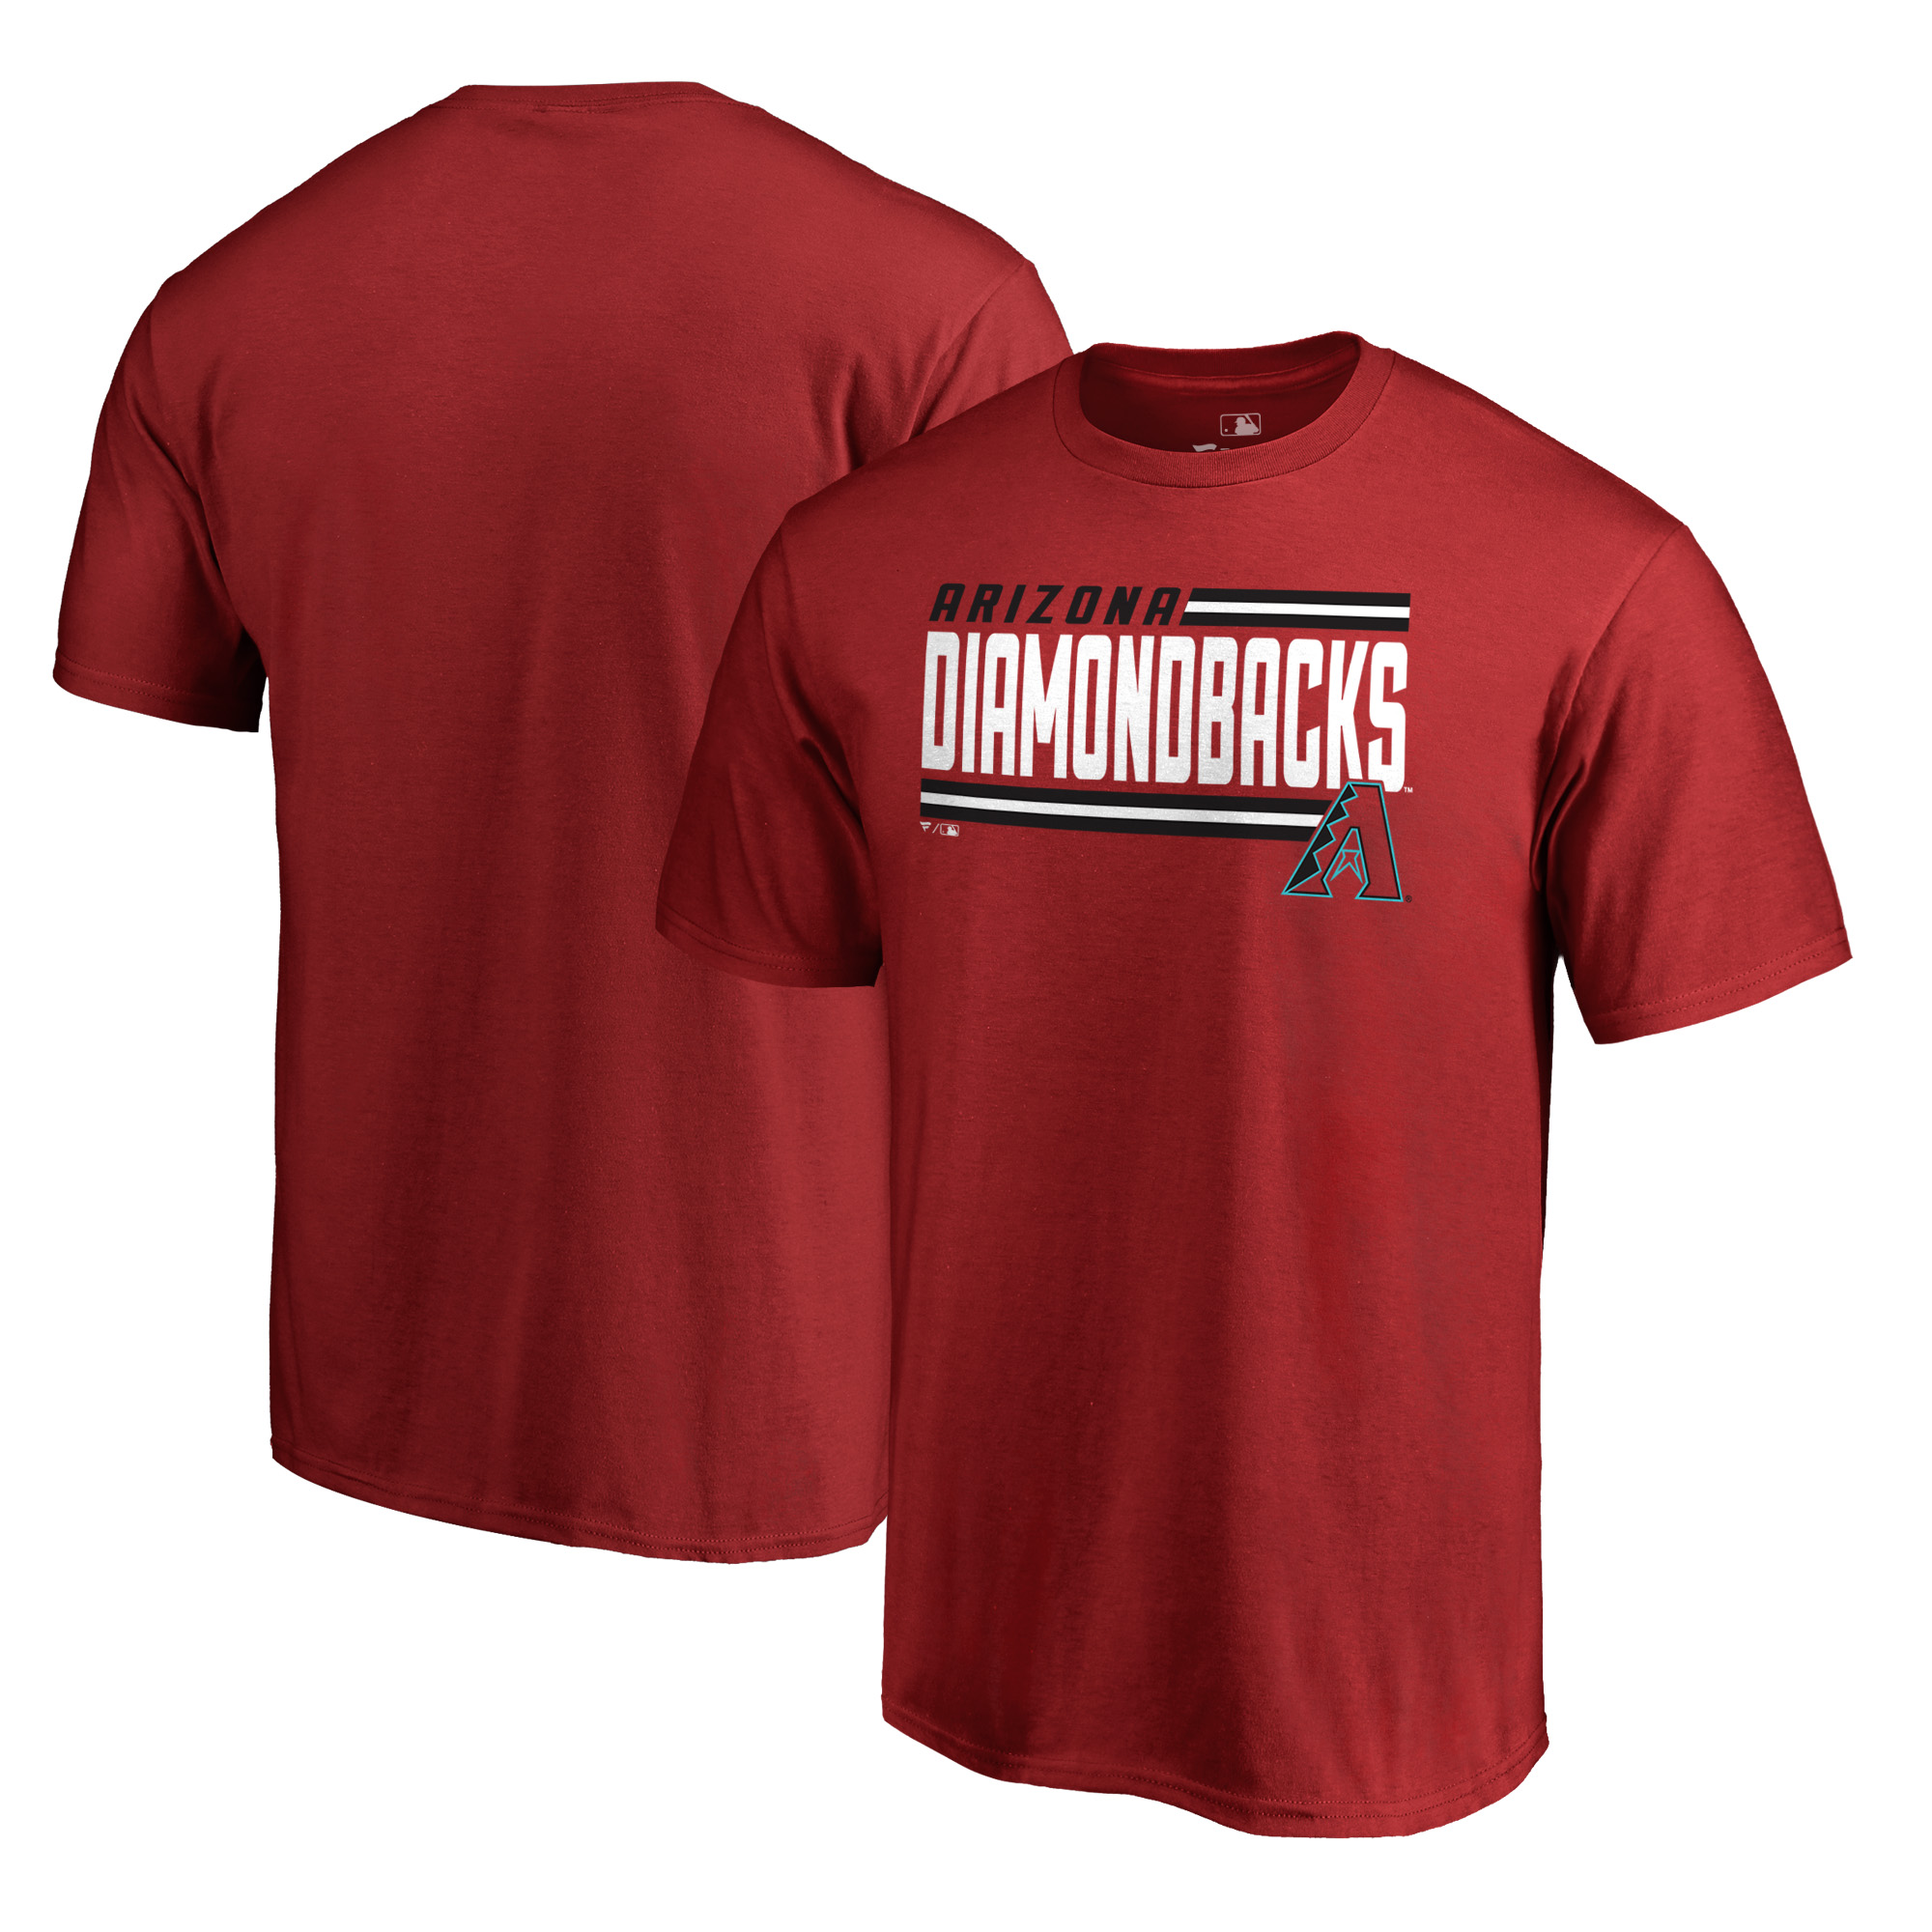 Arizona Diamondbacks Fanatics Branded Onside Stripe T-Shirt - Red